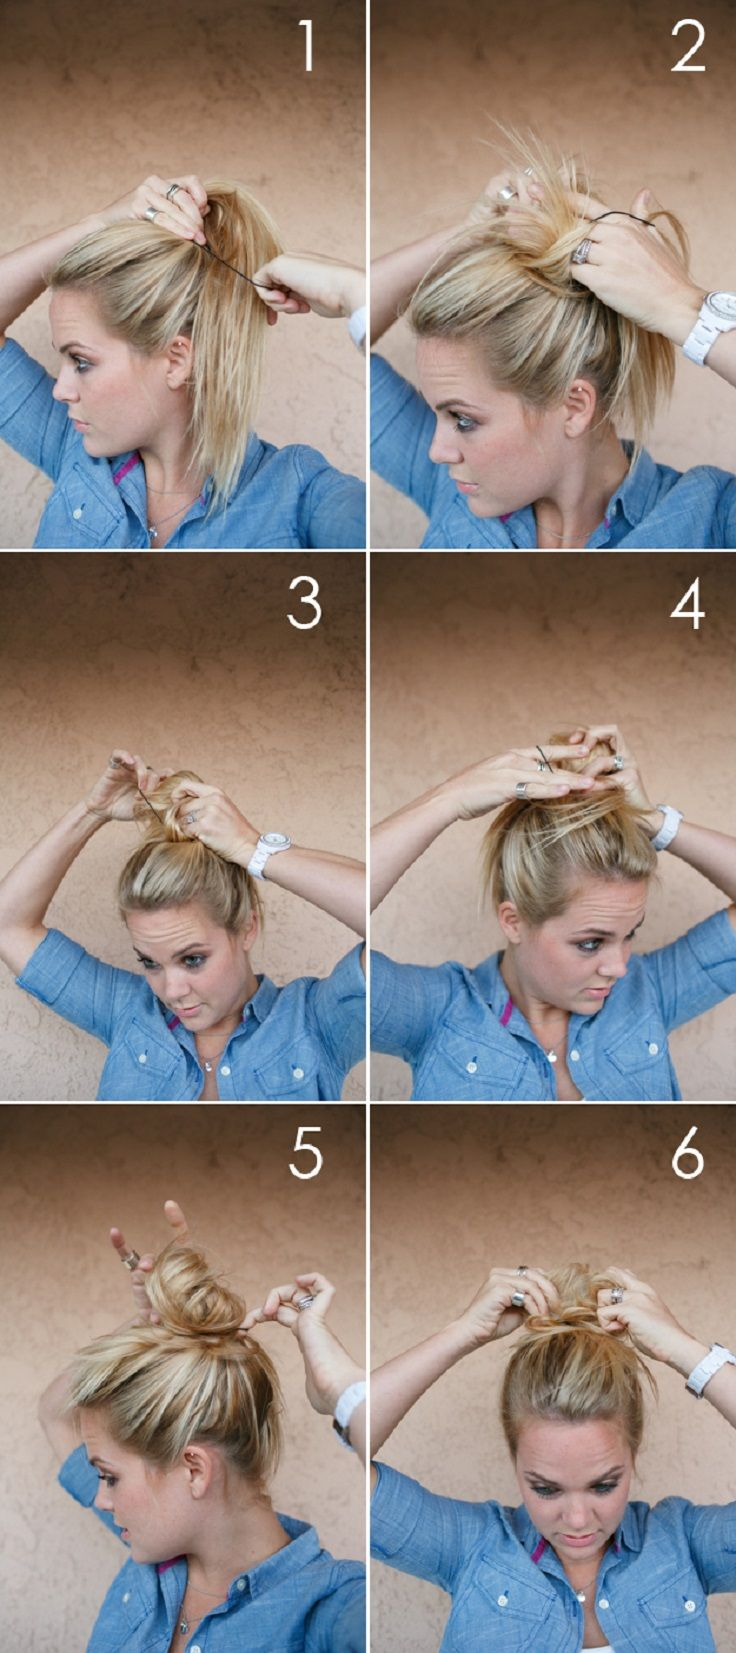 5 Minute Hairstyles For Girls Best 25 Messy Hair Buns Ideas On Pinterest Messy Bun Tutorials